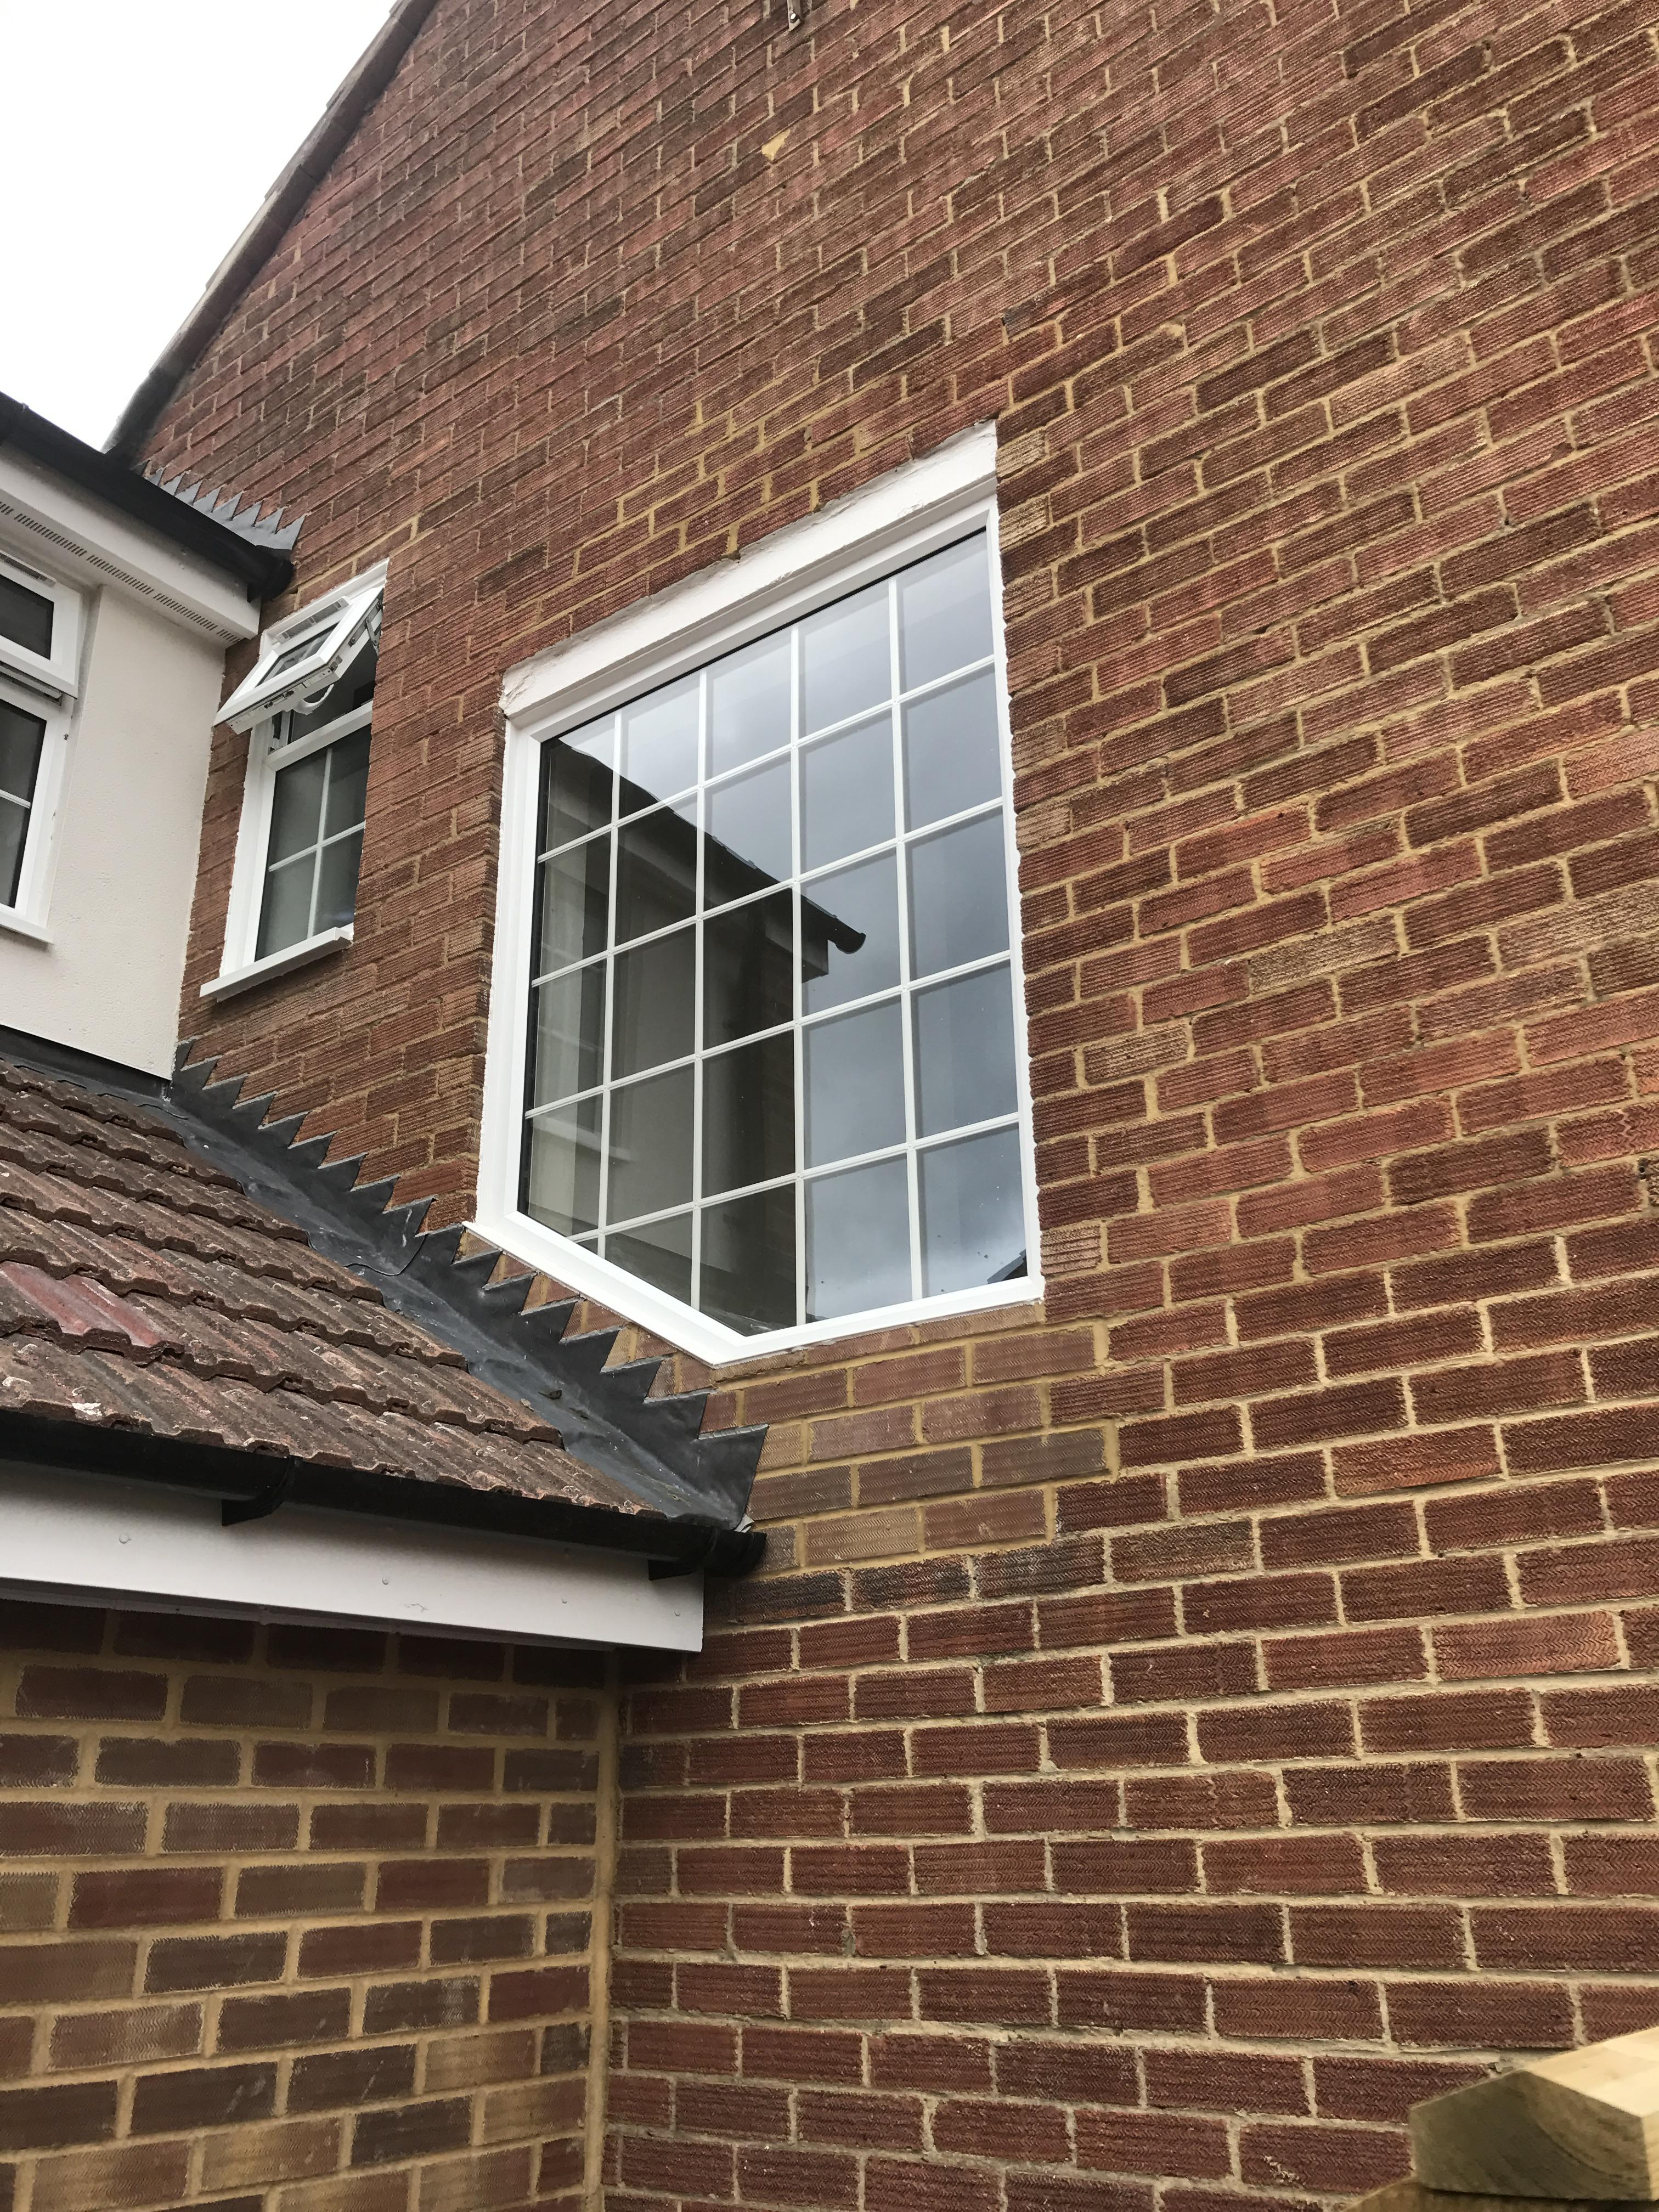 PVCu shaped fixed window with white Georgian bar in sealed unit